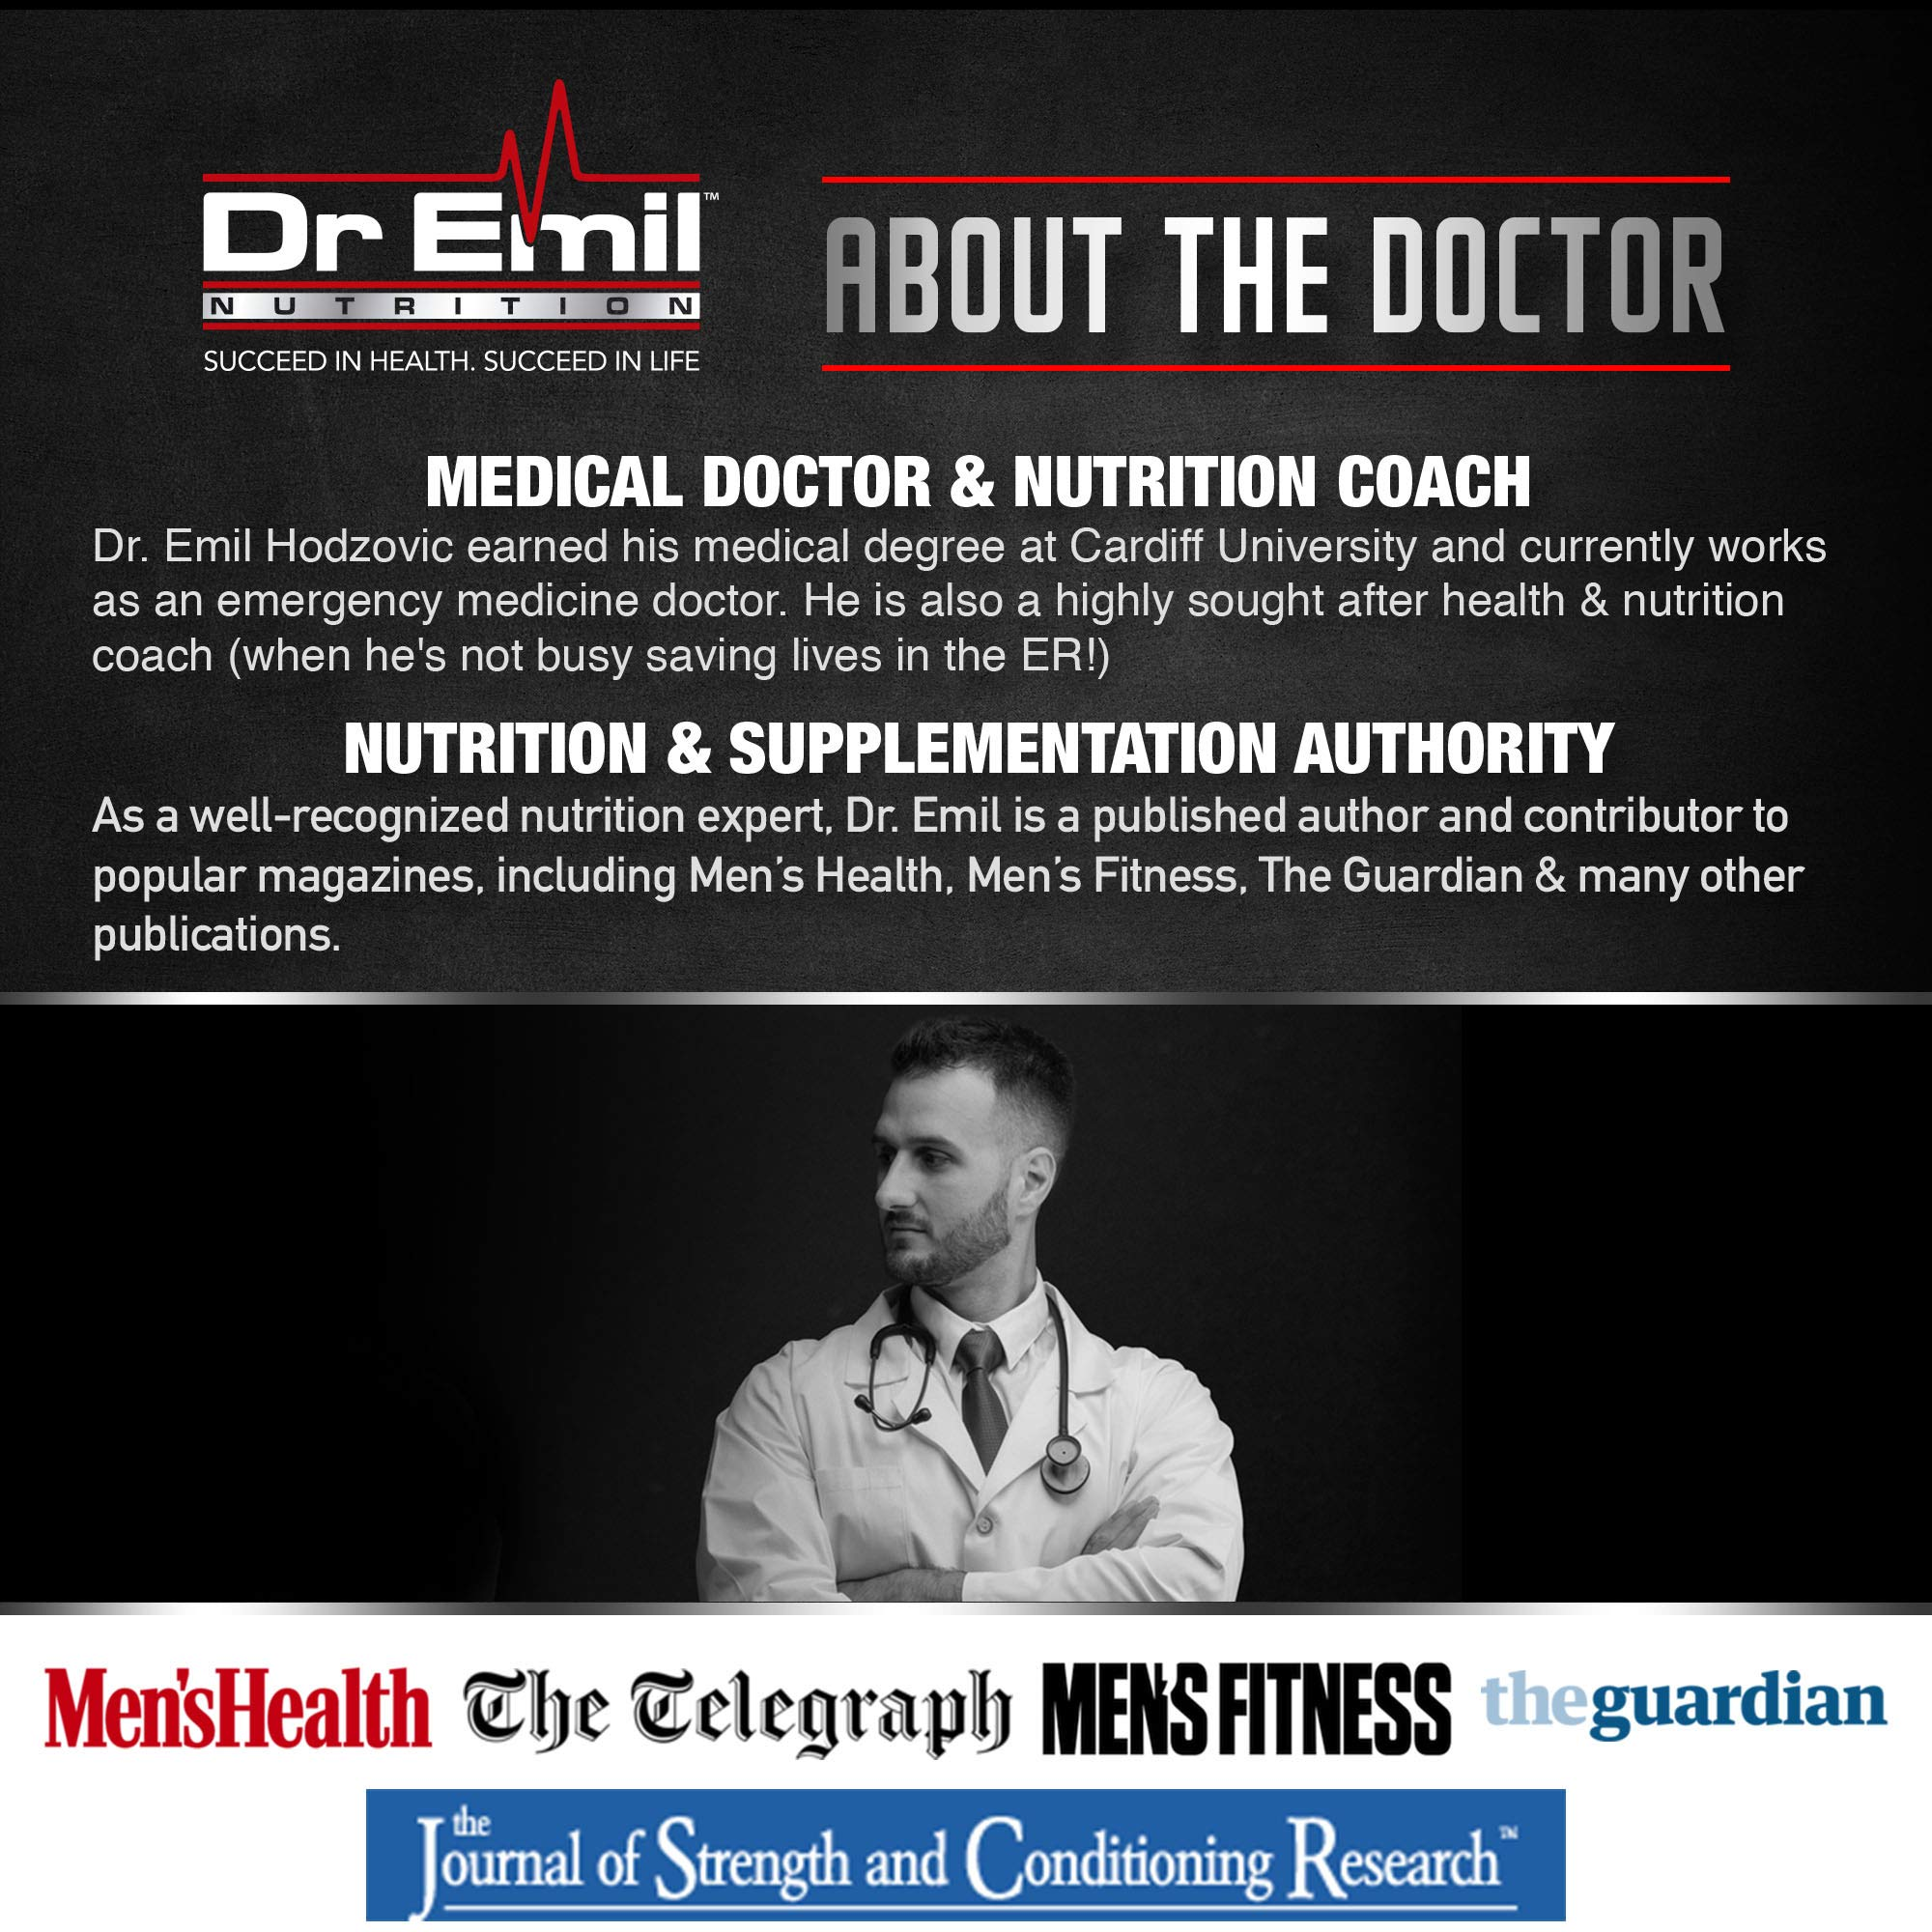 Dr. Emil - PM Fat Burner, Sleep Aid and Night Time Appetite Suppressant - Stimulant-Free Weight Loss Pills and Metabolism Booster for Men and Women (60 Vegan Diet Pills) by DR EMIL NUTRITION (Image #3)